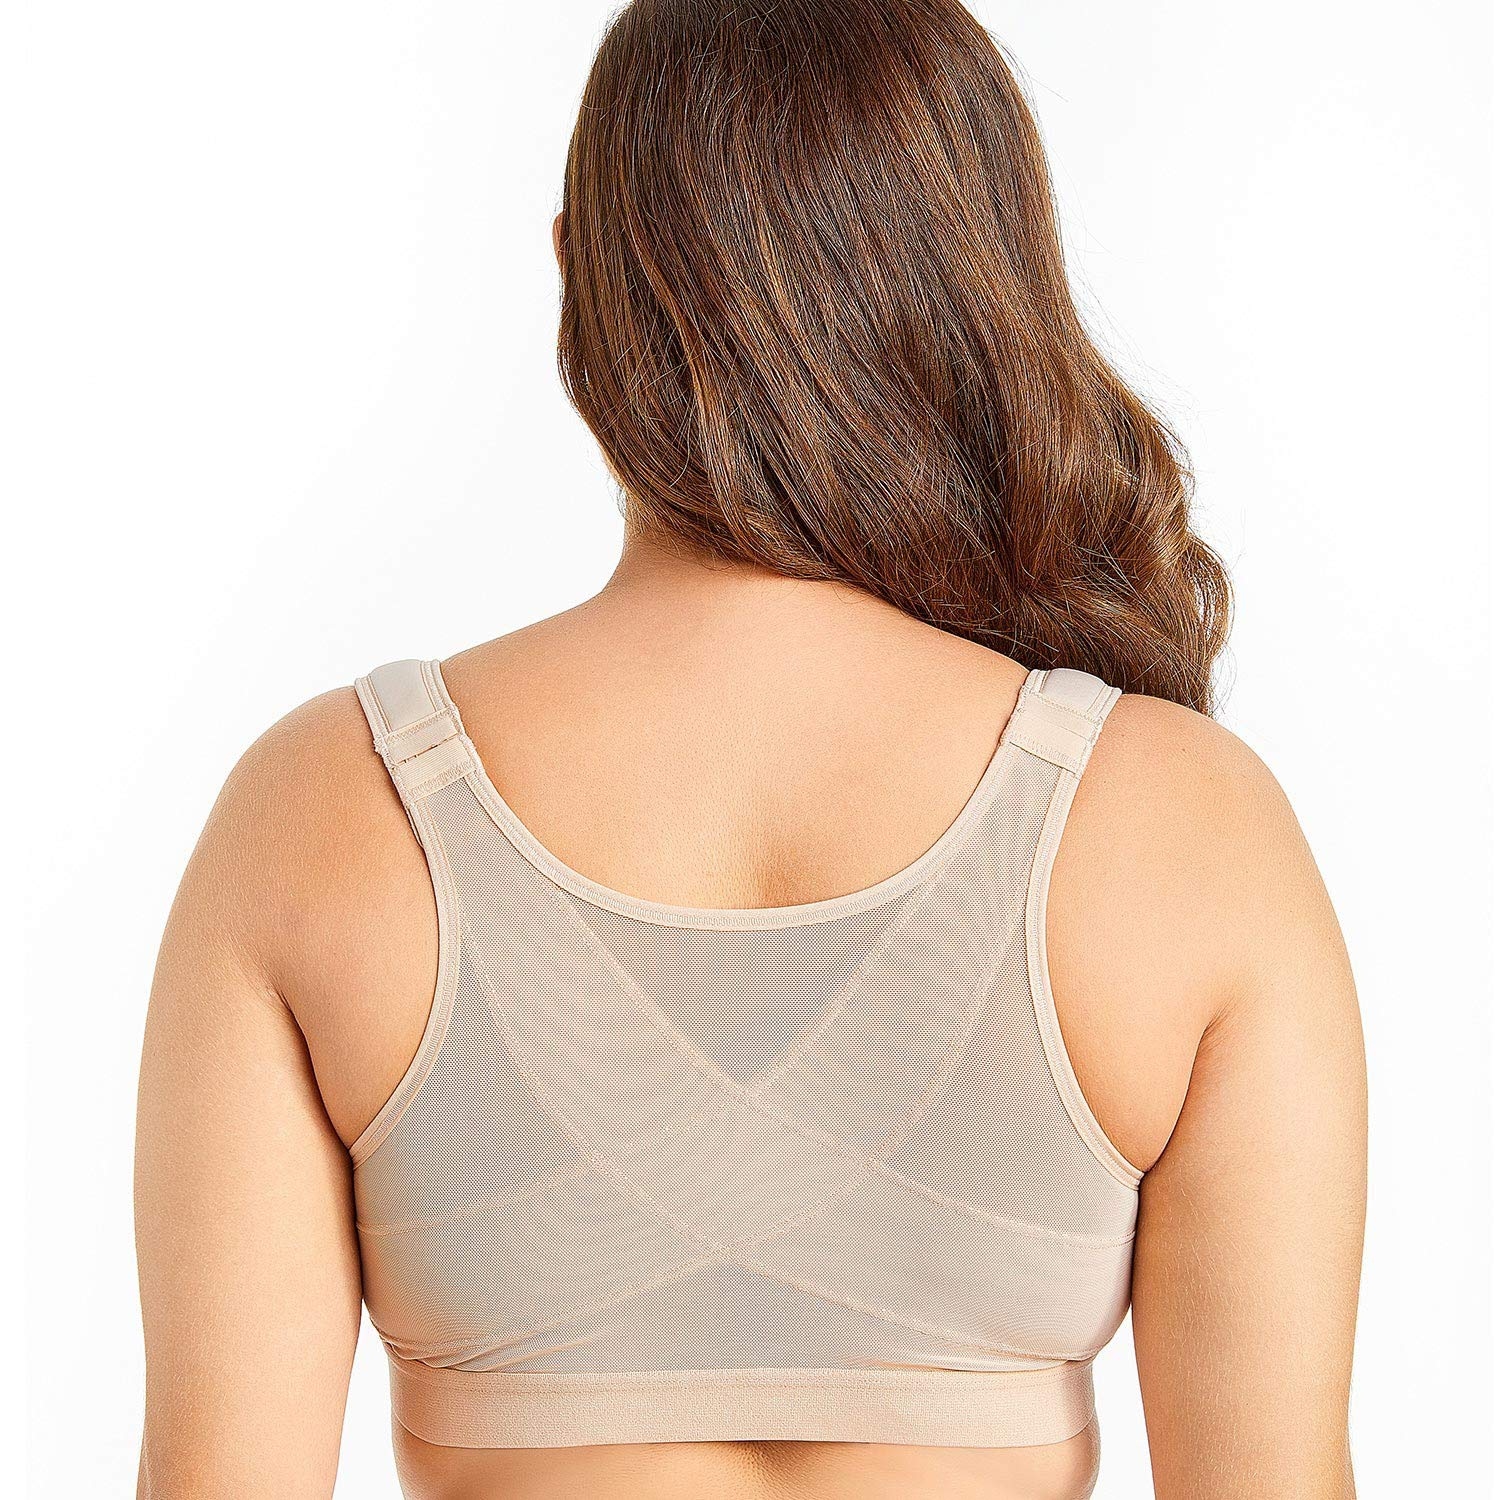 Womens Front Closure Full Coverage Wire Free Support Bra,Mystery Blue06,B,42